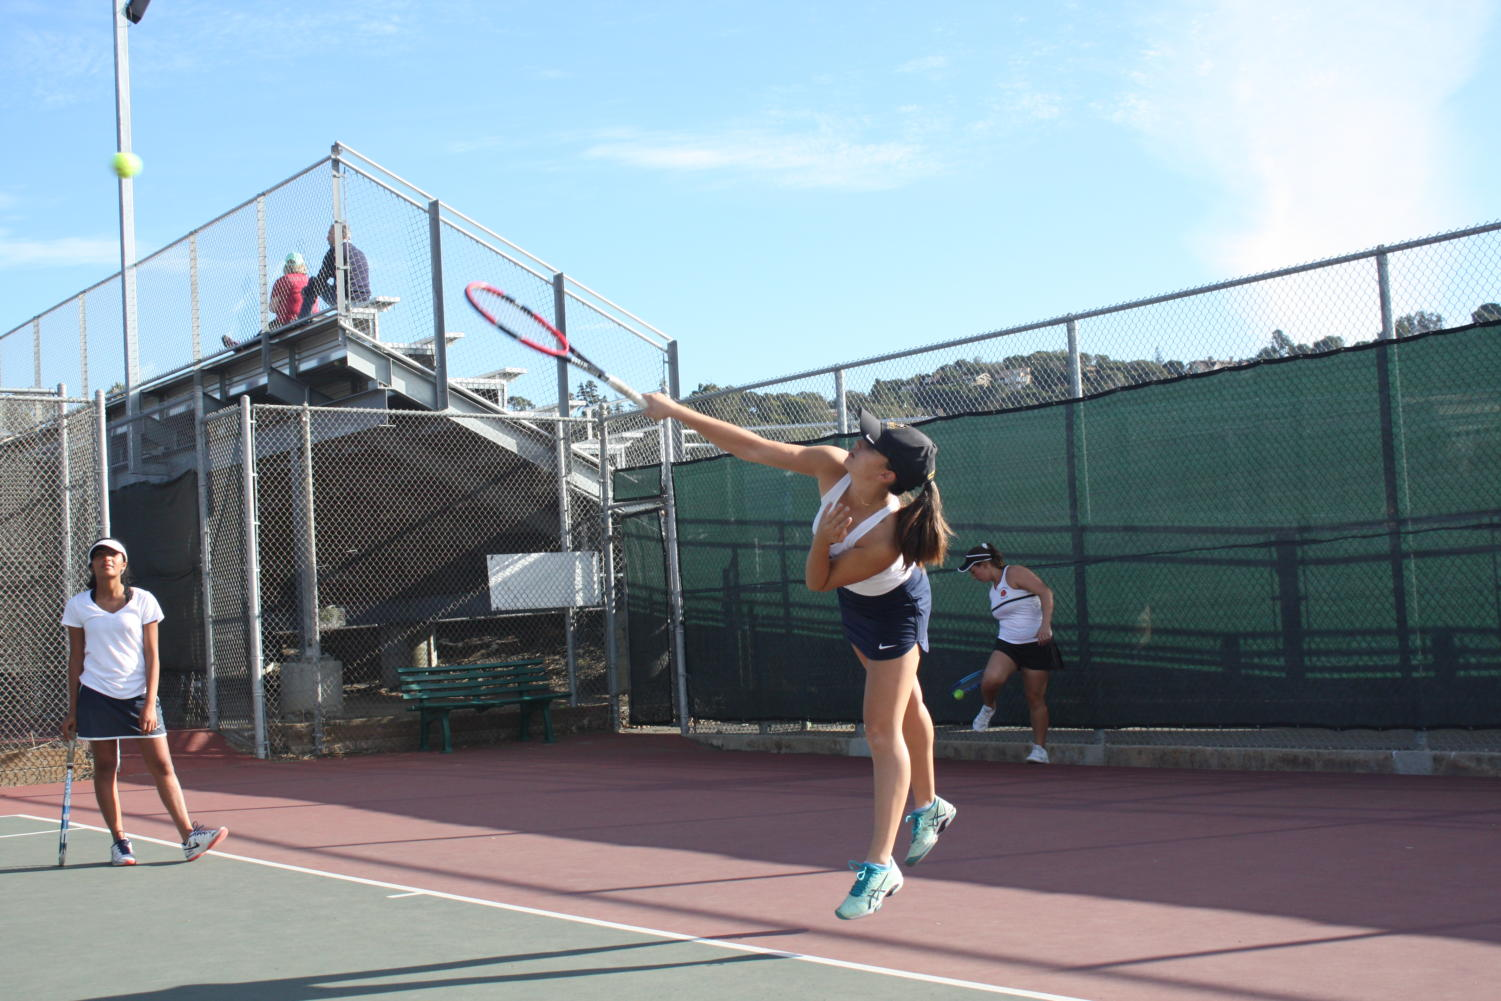 Isabella Reeves, a sophomore, serves the ball during her warm-ups.